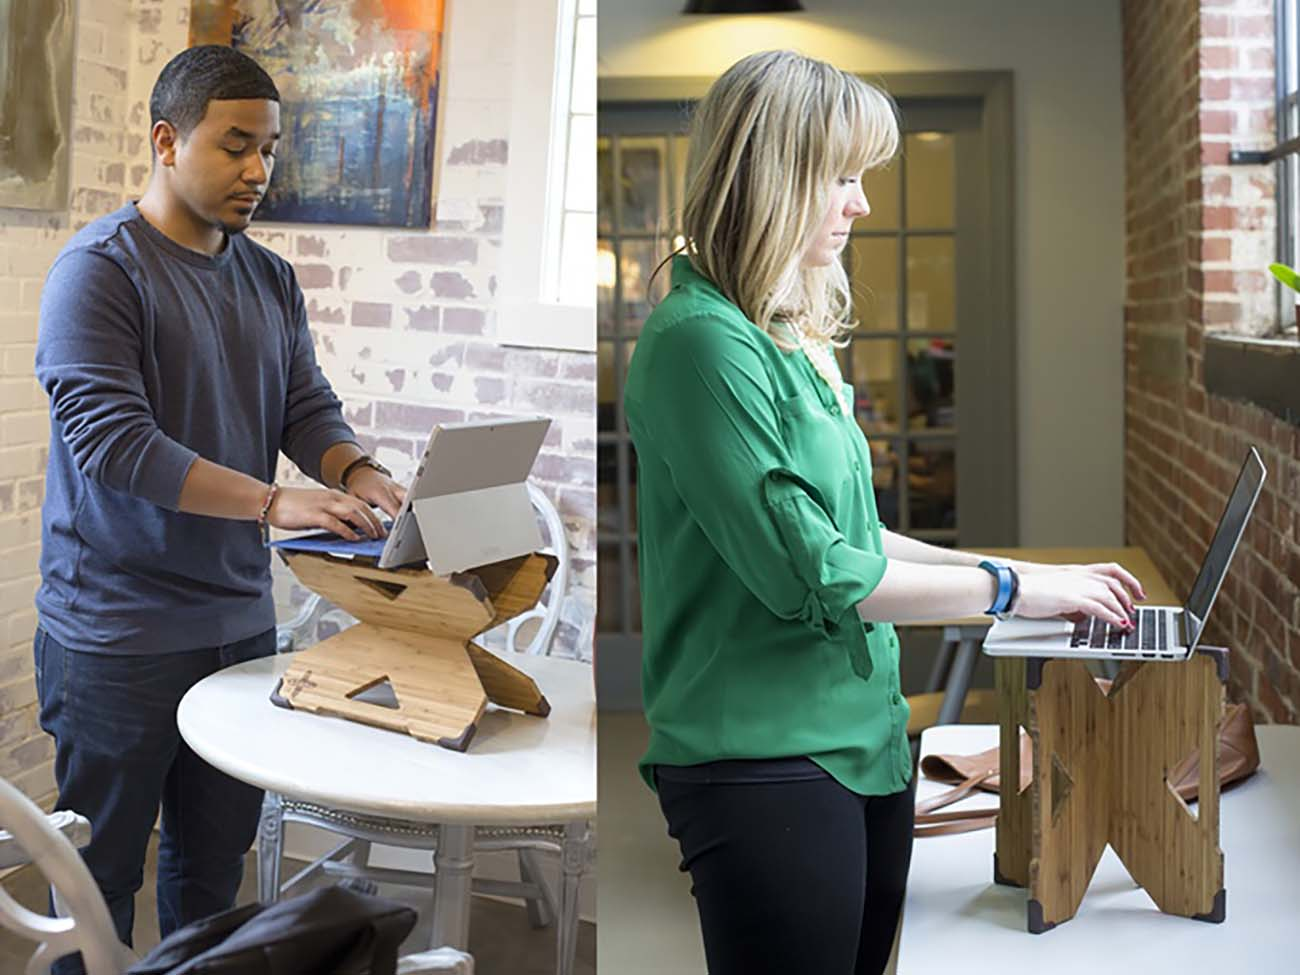 This standing laptop desk, created in Charlotte, has already exceeded 80% of its Kickstarter goal